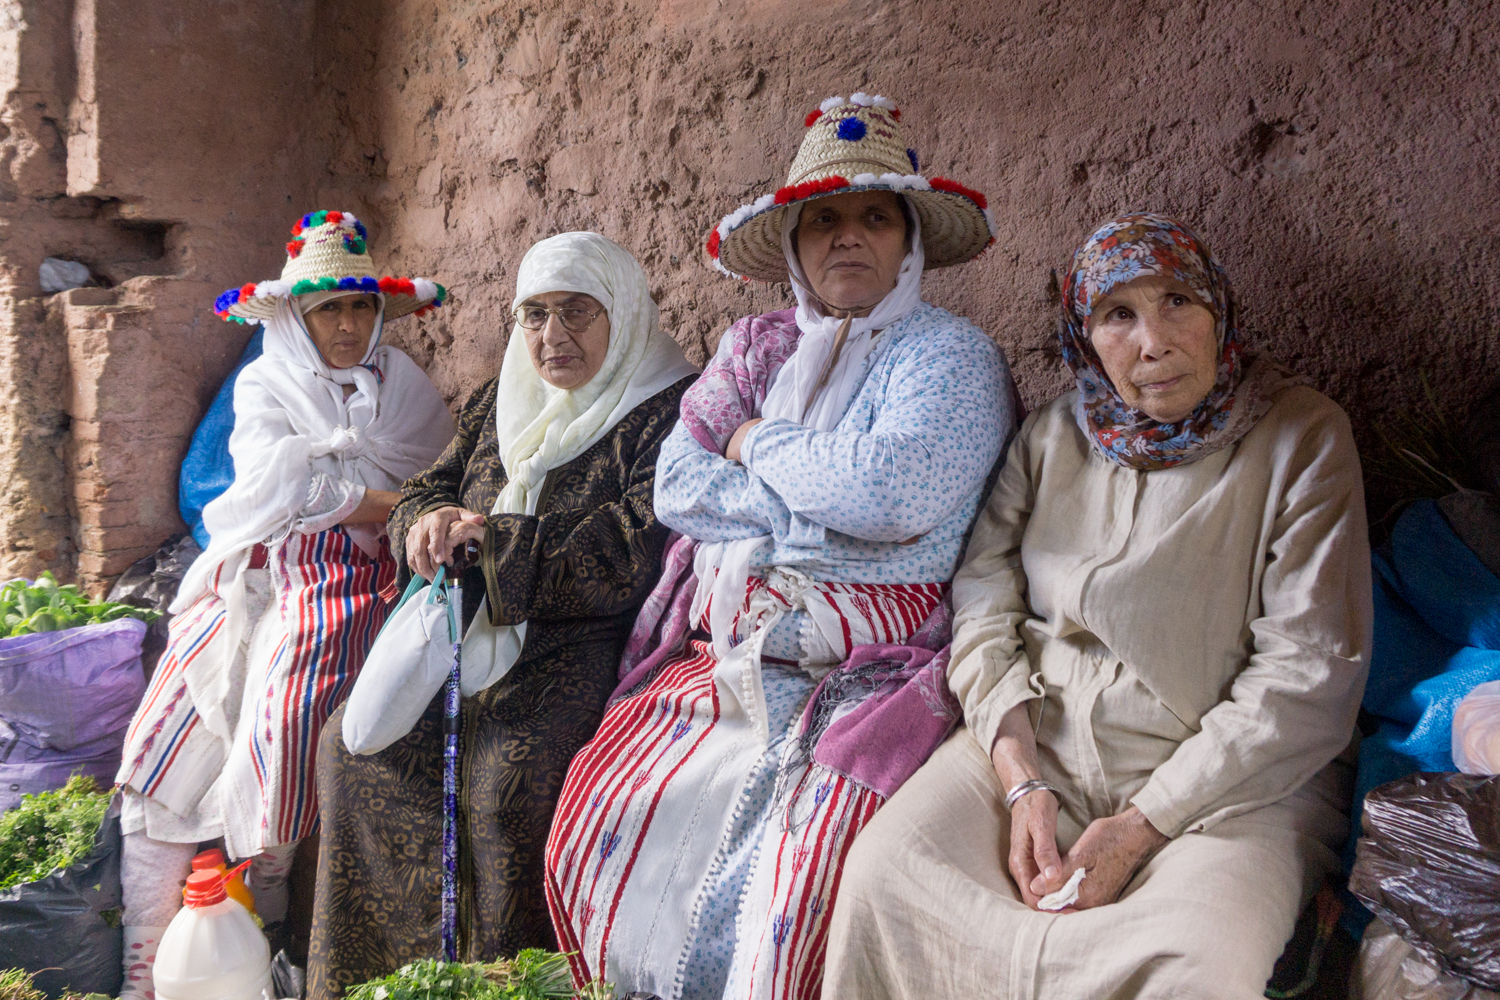 In Chefchaouen, we saw some berber women resting at the market day.